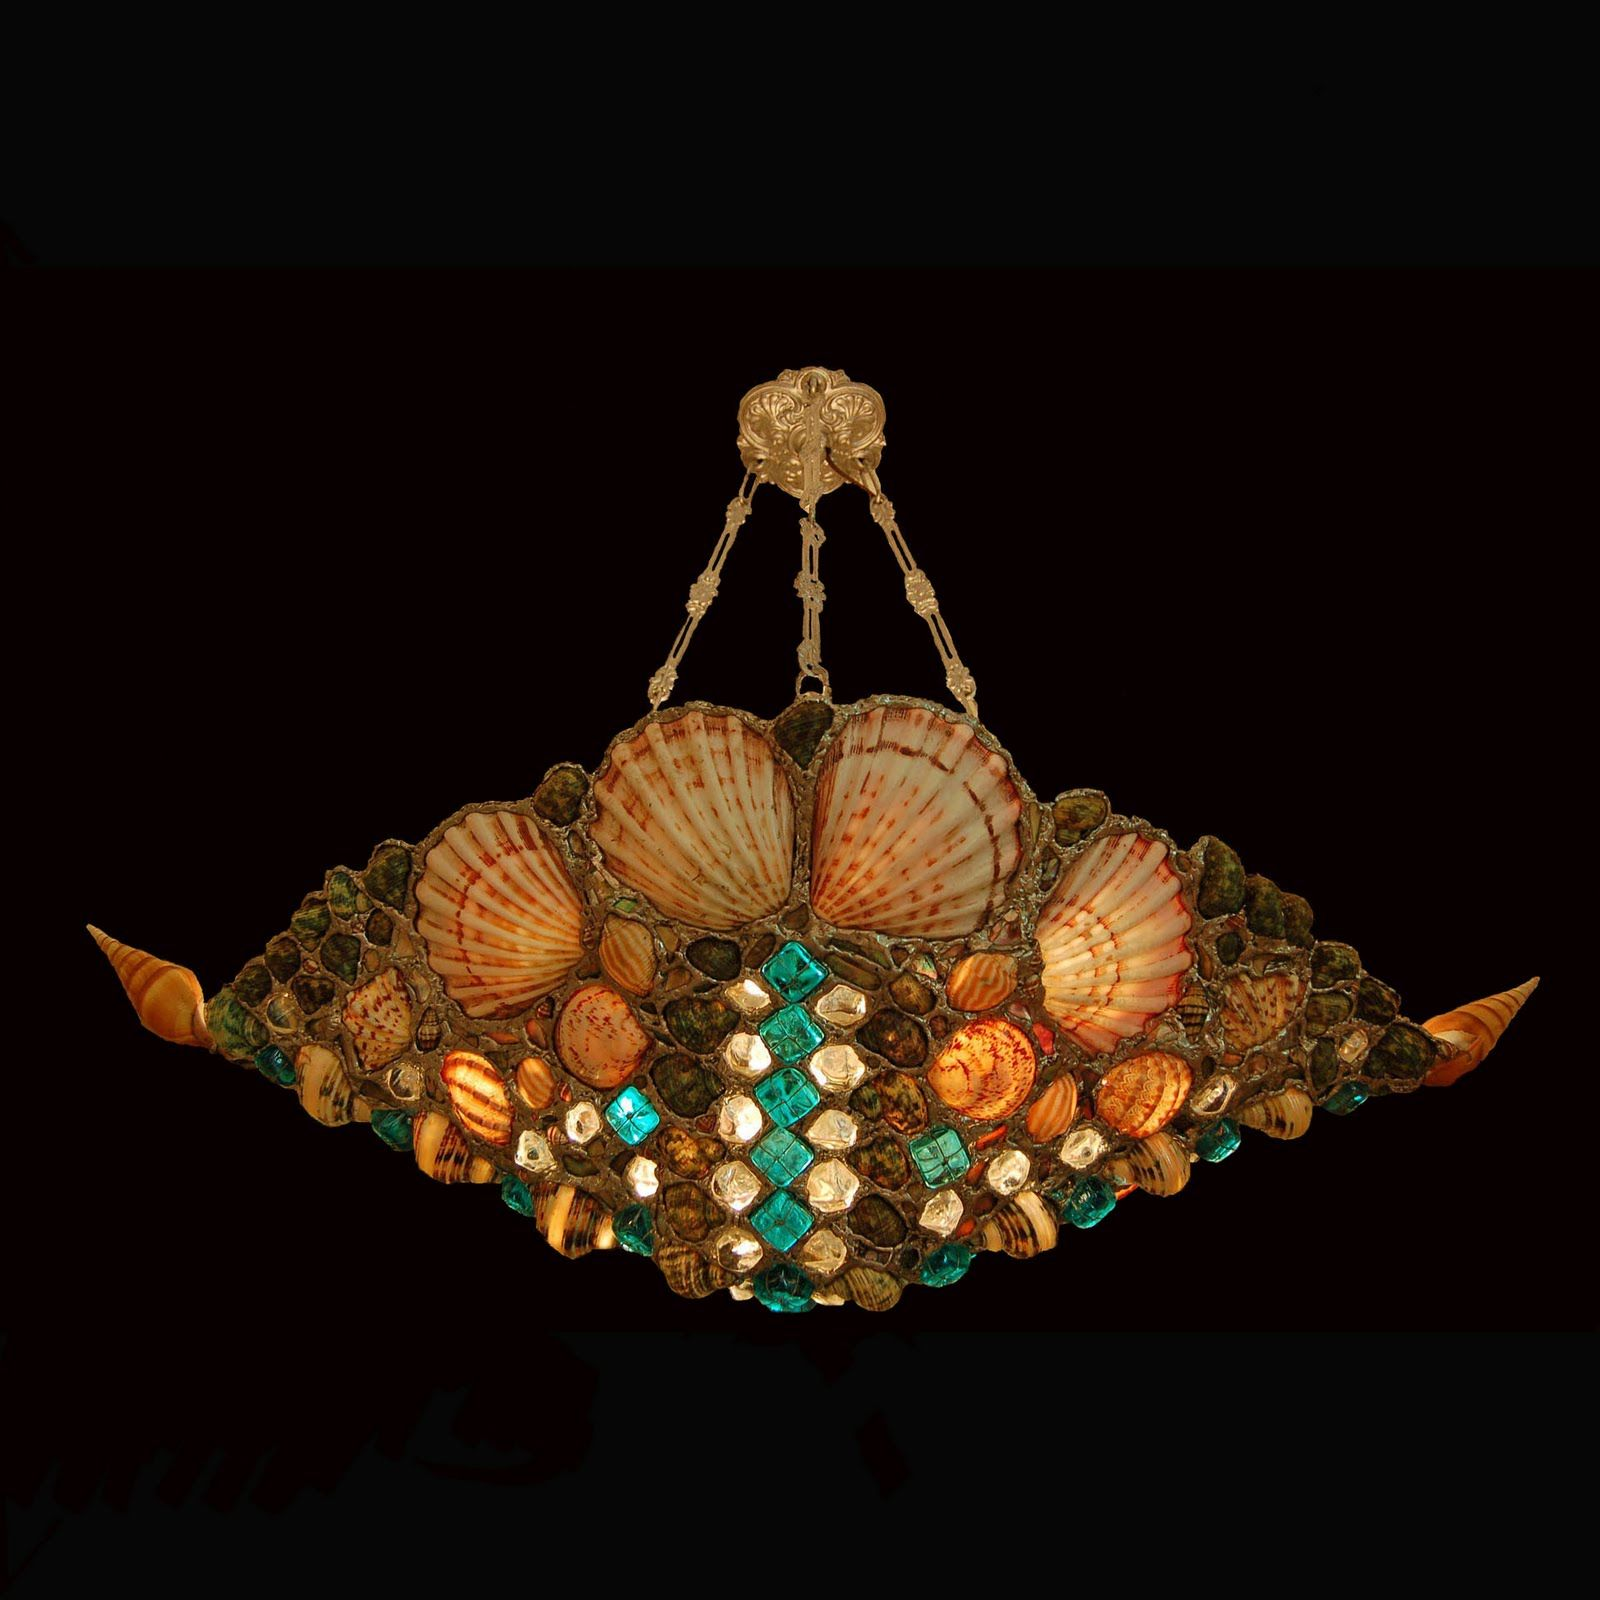 Seashell Lighting by Drake Lamps Seashell lamps